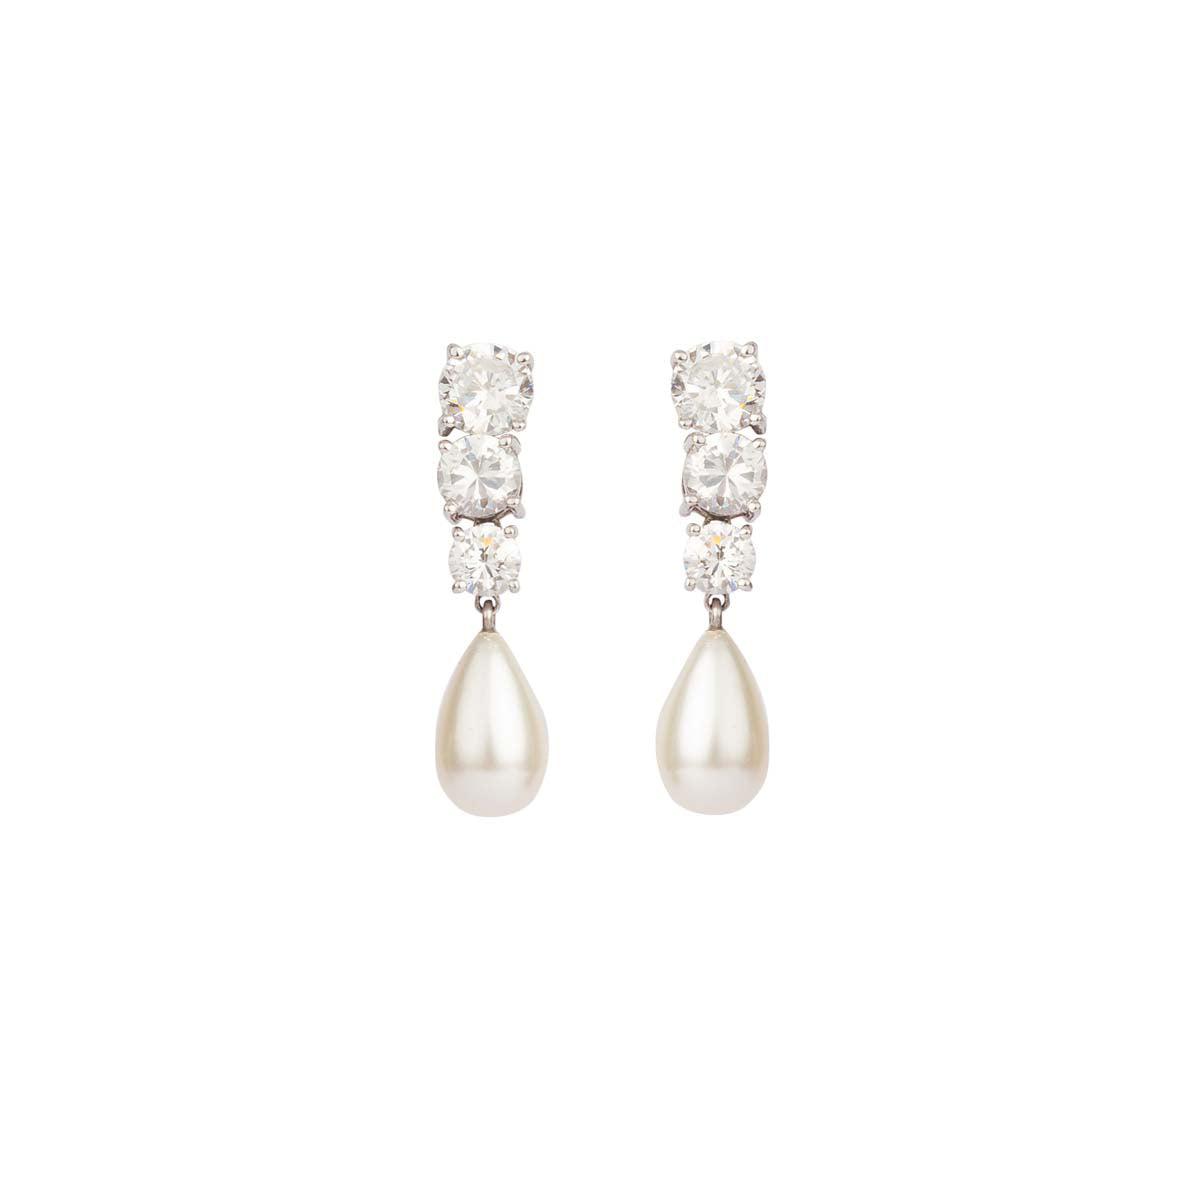 Studded with the shine of a thousand stars, these earrings are made of three solitaires of descending size finished with a perfect pearl drop set in silver.